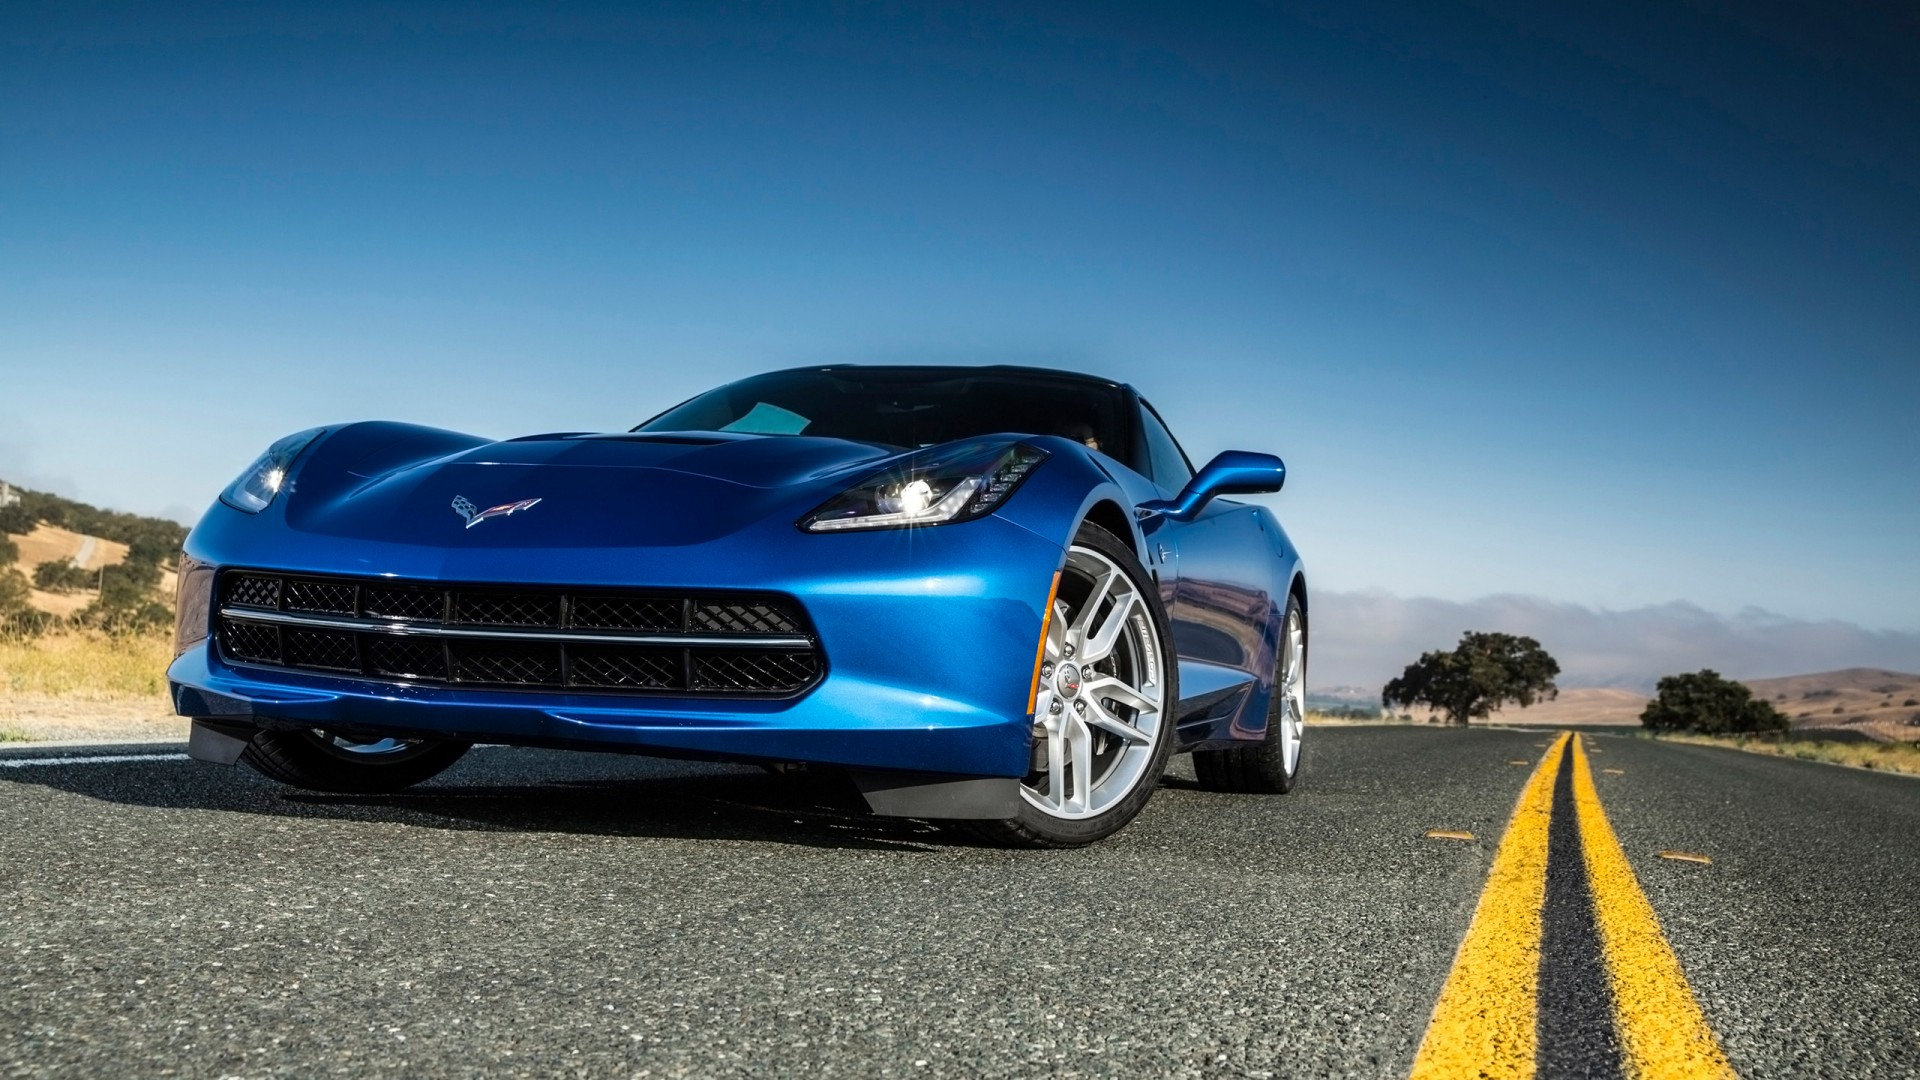 2014 chevrolet corvette stingray blue wallpaper hd car wallpapers